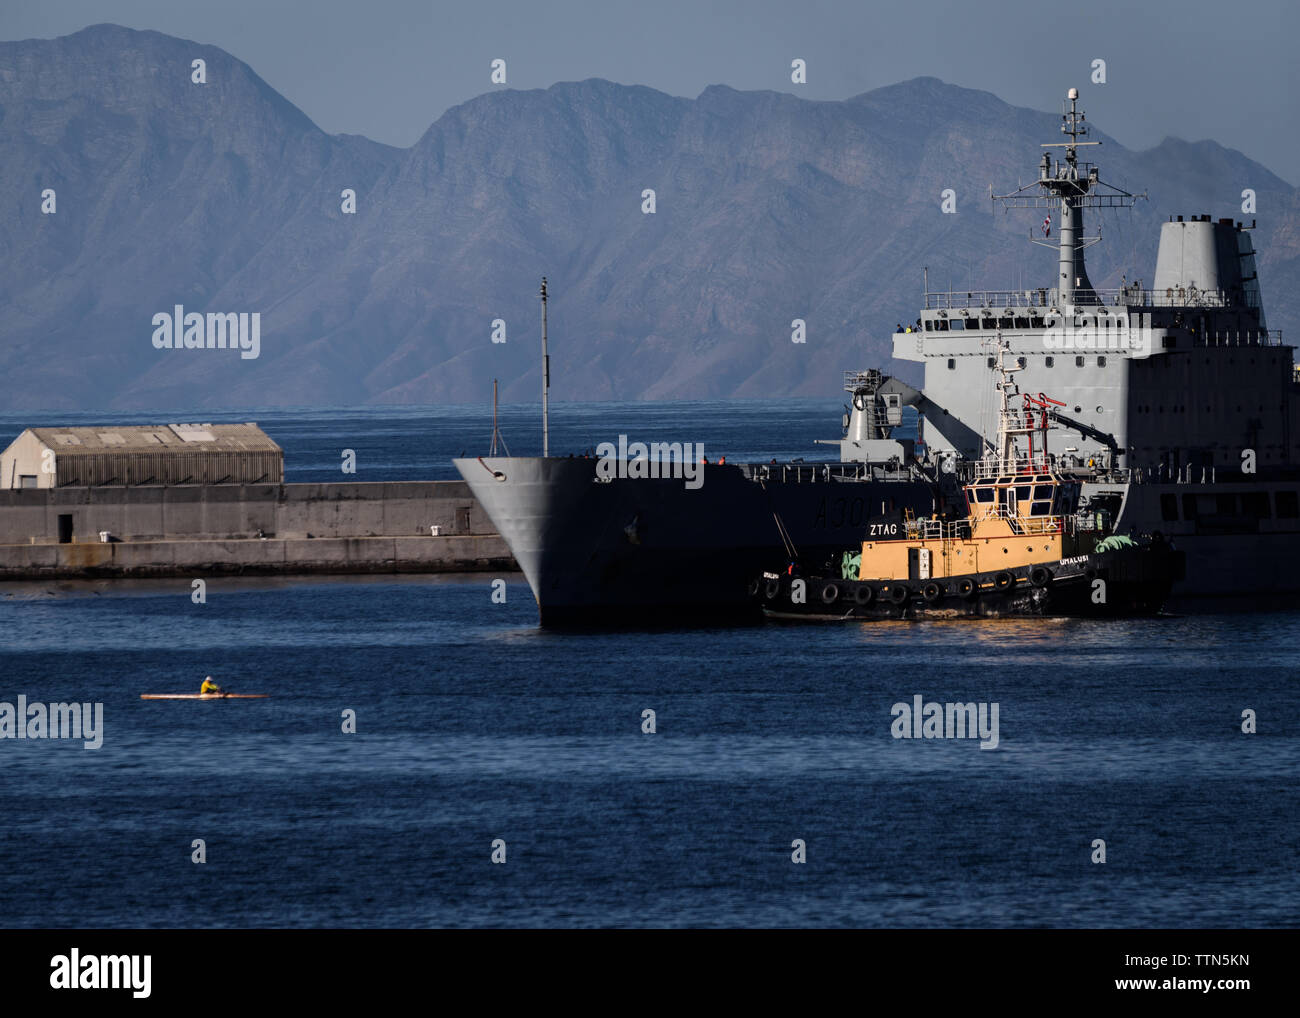 The SAS Drakensberg fleet replenishment ship at the Simons Town naval base in the Western Cape, South Africa, with a man skulling - Stock Image